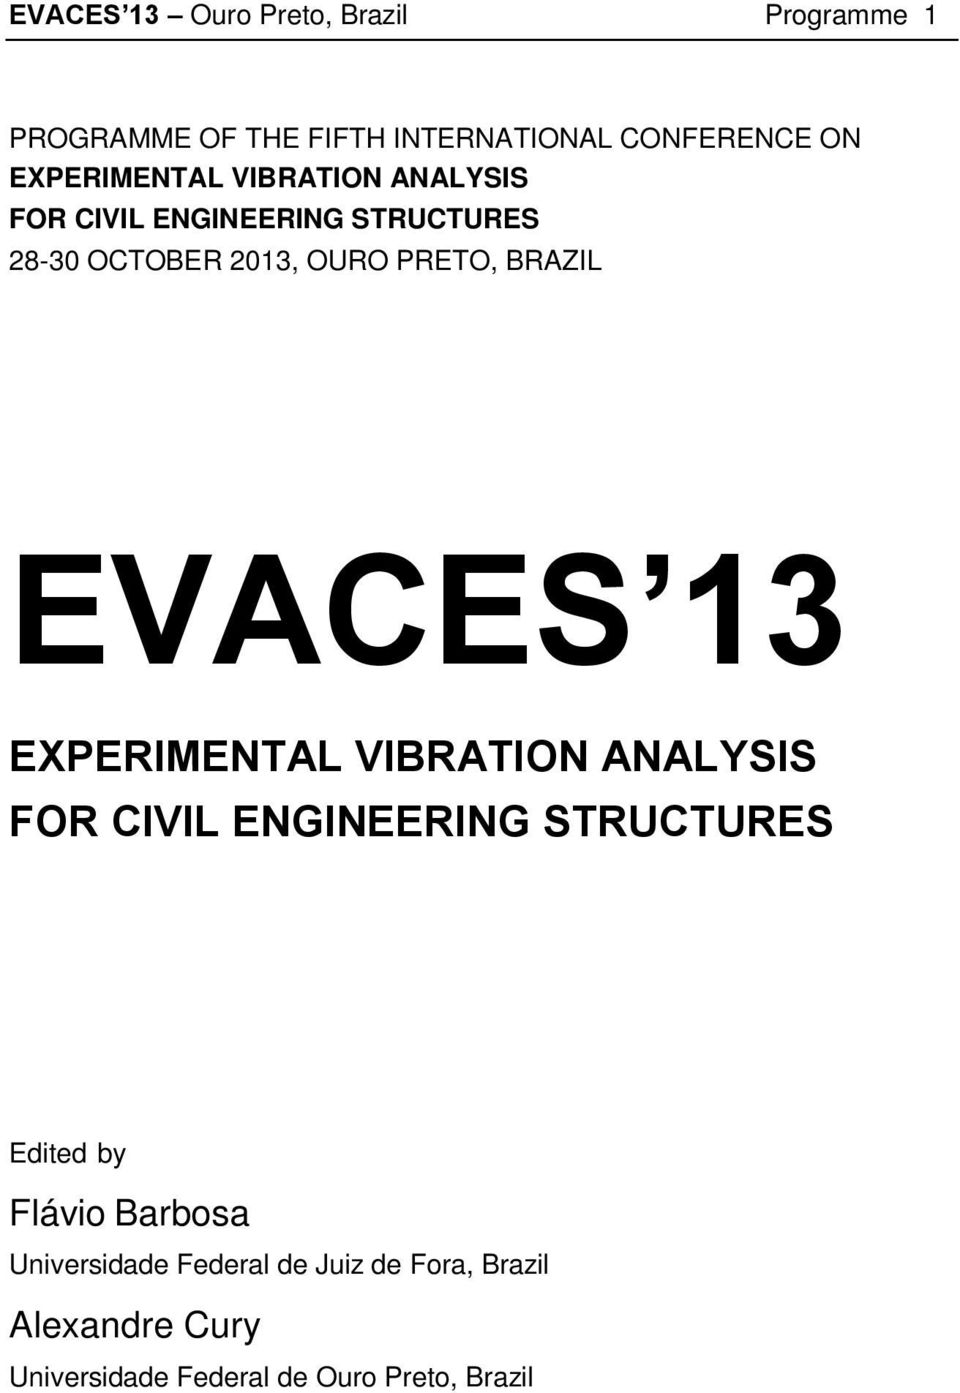 BRAZIL EVACES 13 EXPERIMENTAL VIBRATION ANALYSIS FOR CIVIL ENGINEERING STRUCTURES Edited by Flávio